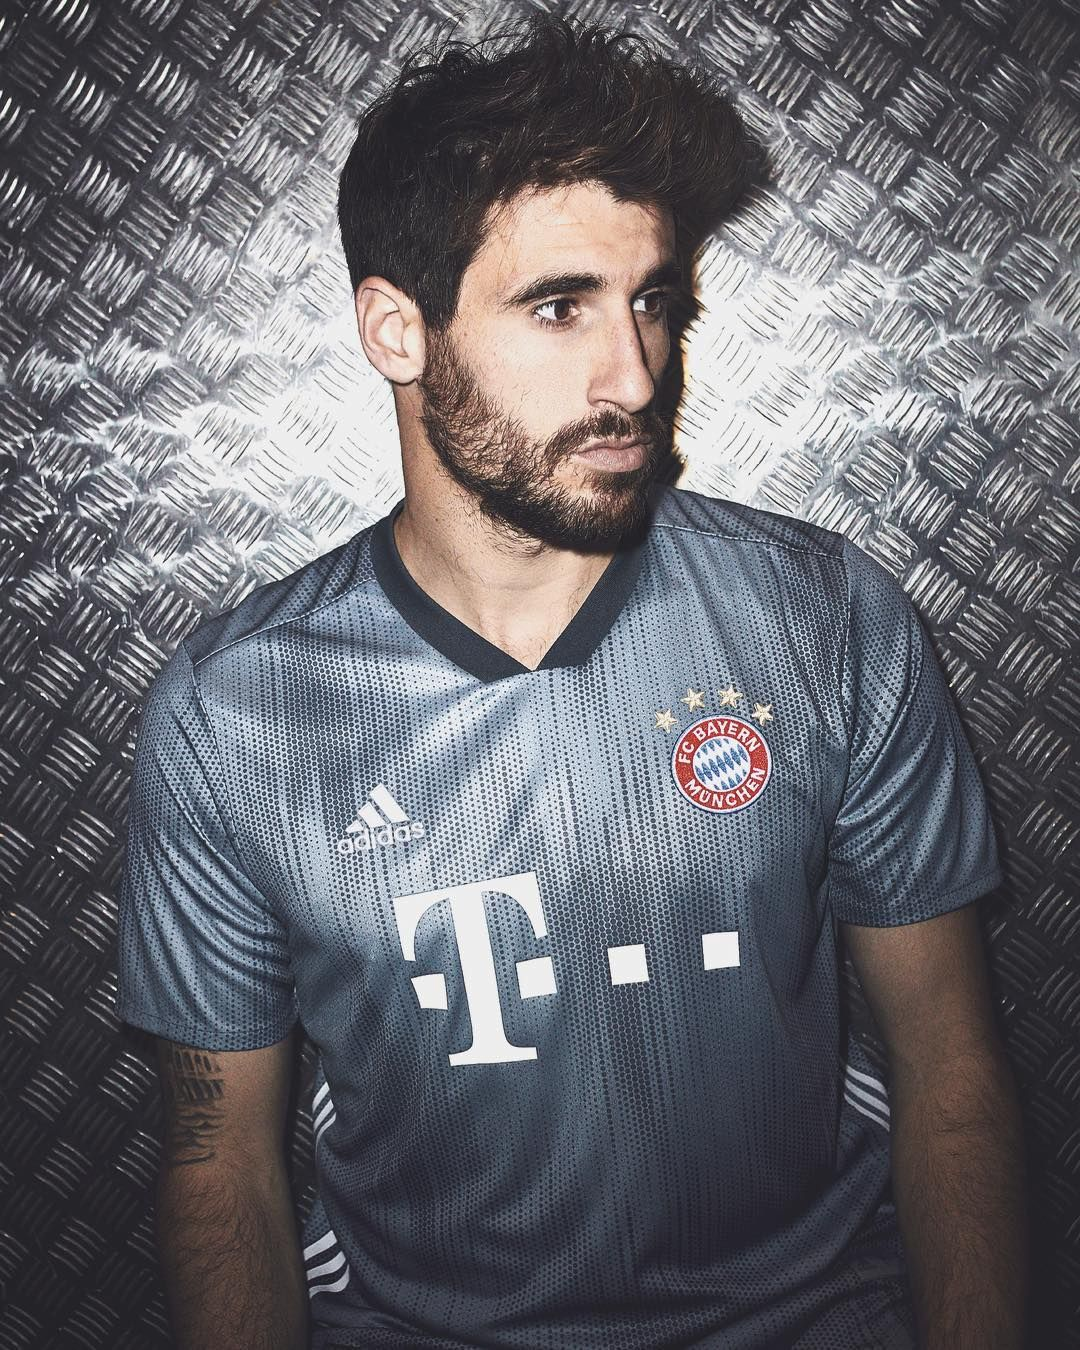 quality design a864b e04d0 🌊 Introducing the 2018/19 Bayern Munich 3rd kit from adidas ...